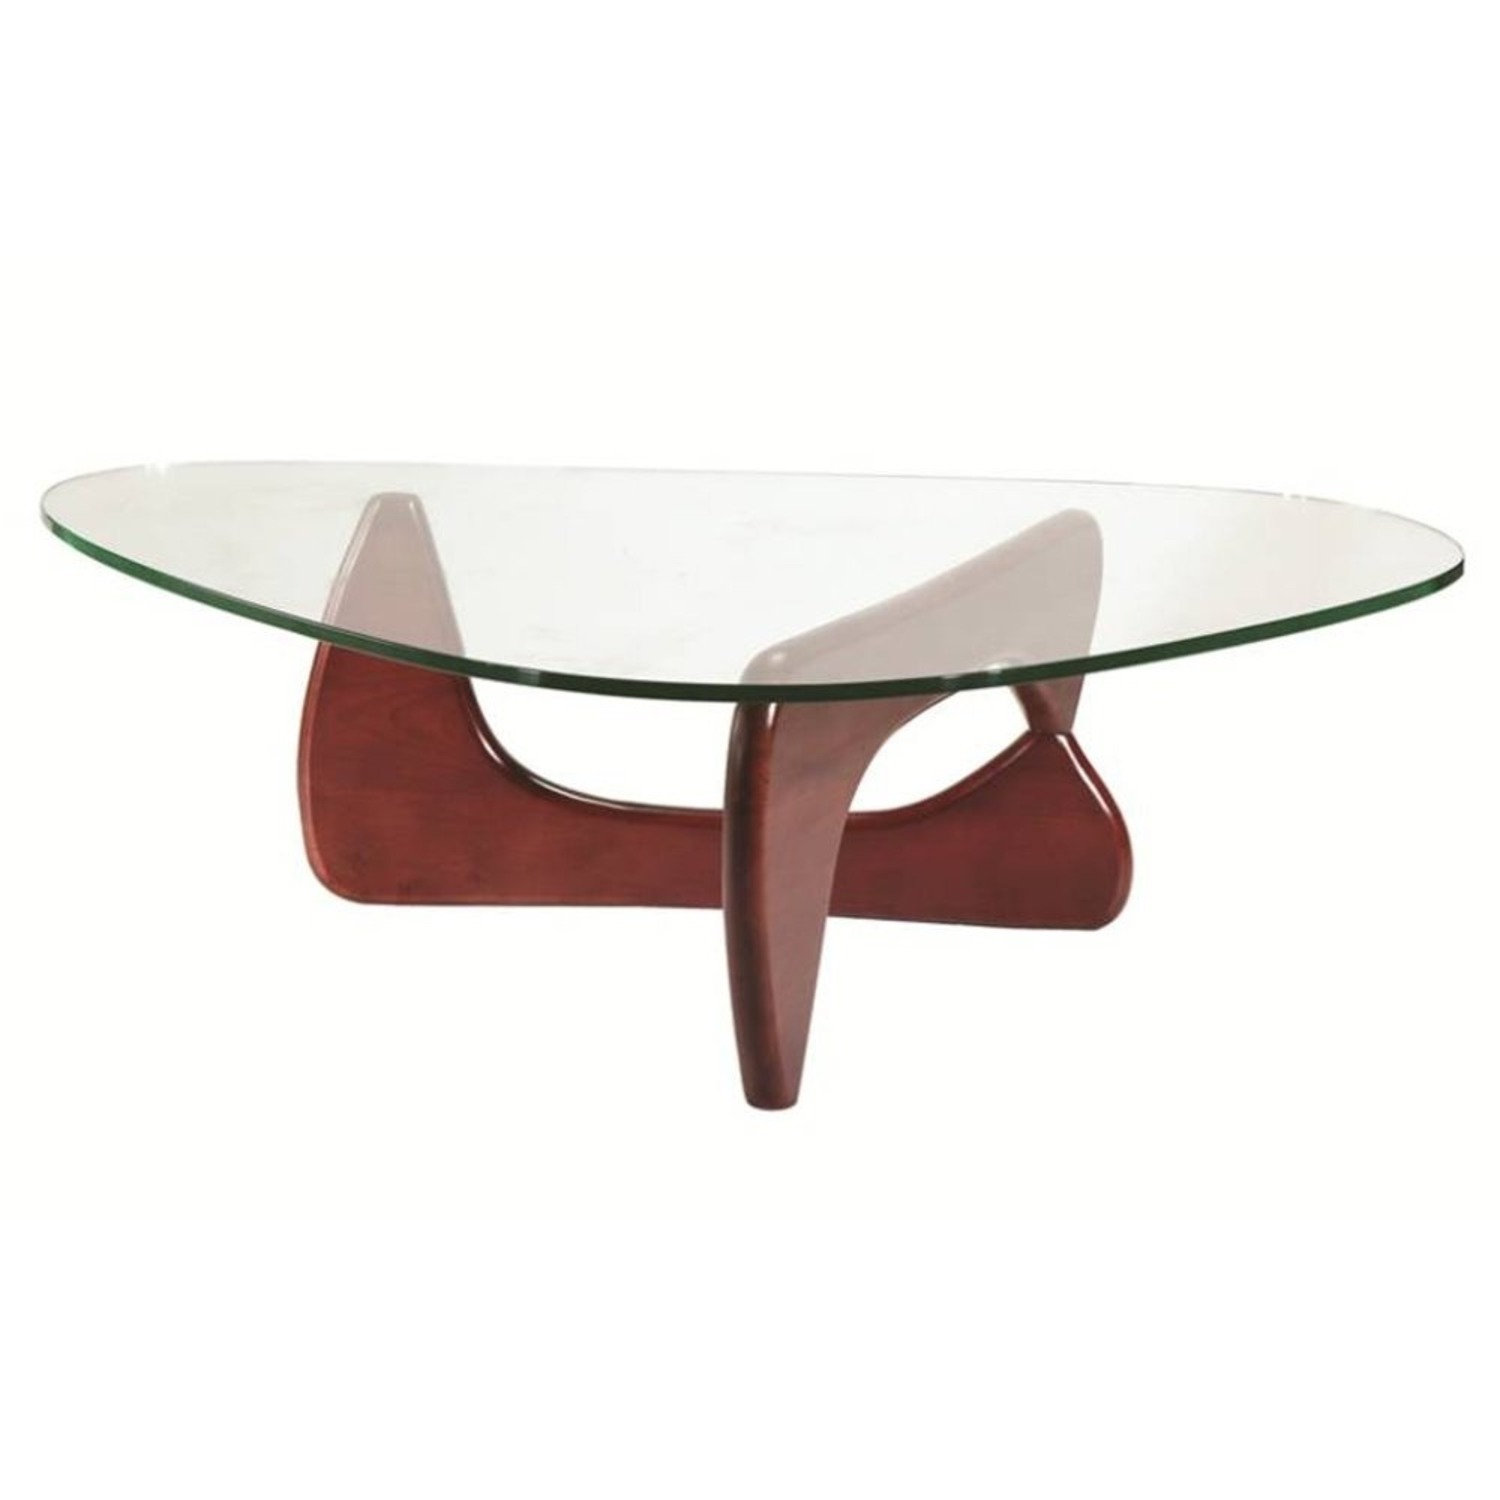 Coffee Table In Cherry Rubberwood W/ Glass Top - image-0